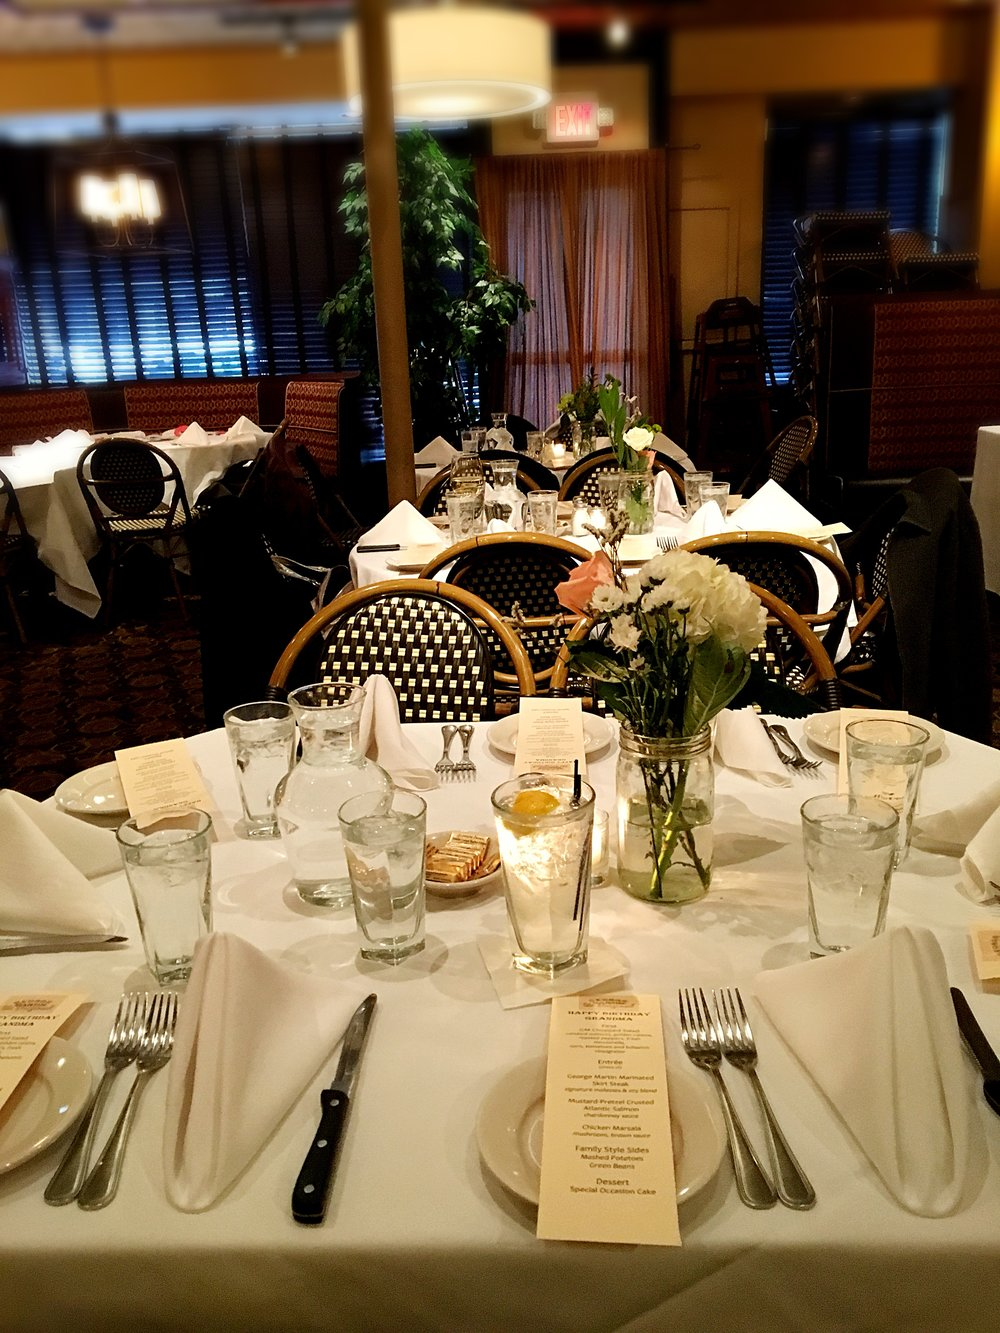 A photo of a table setting.